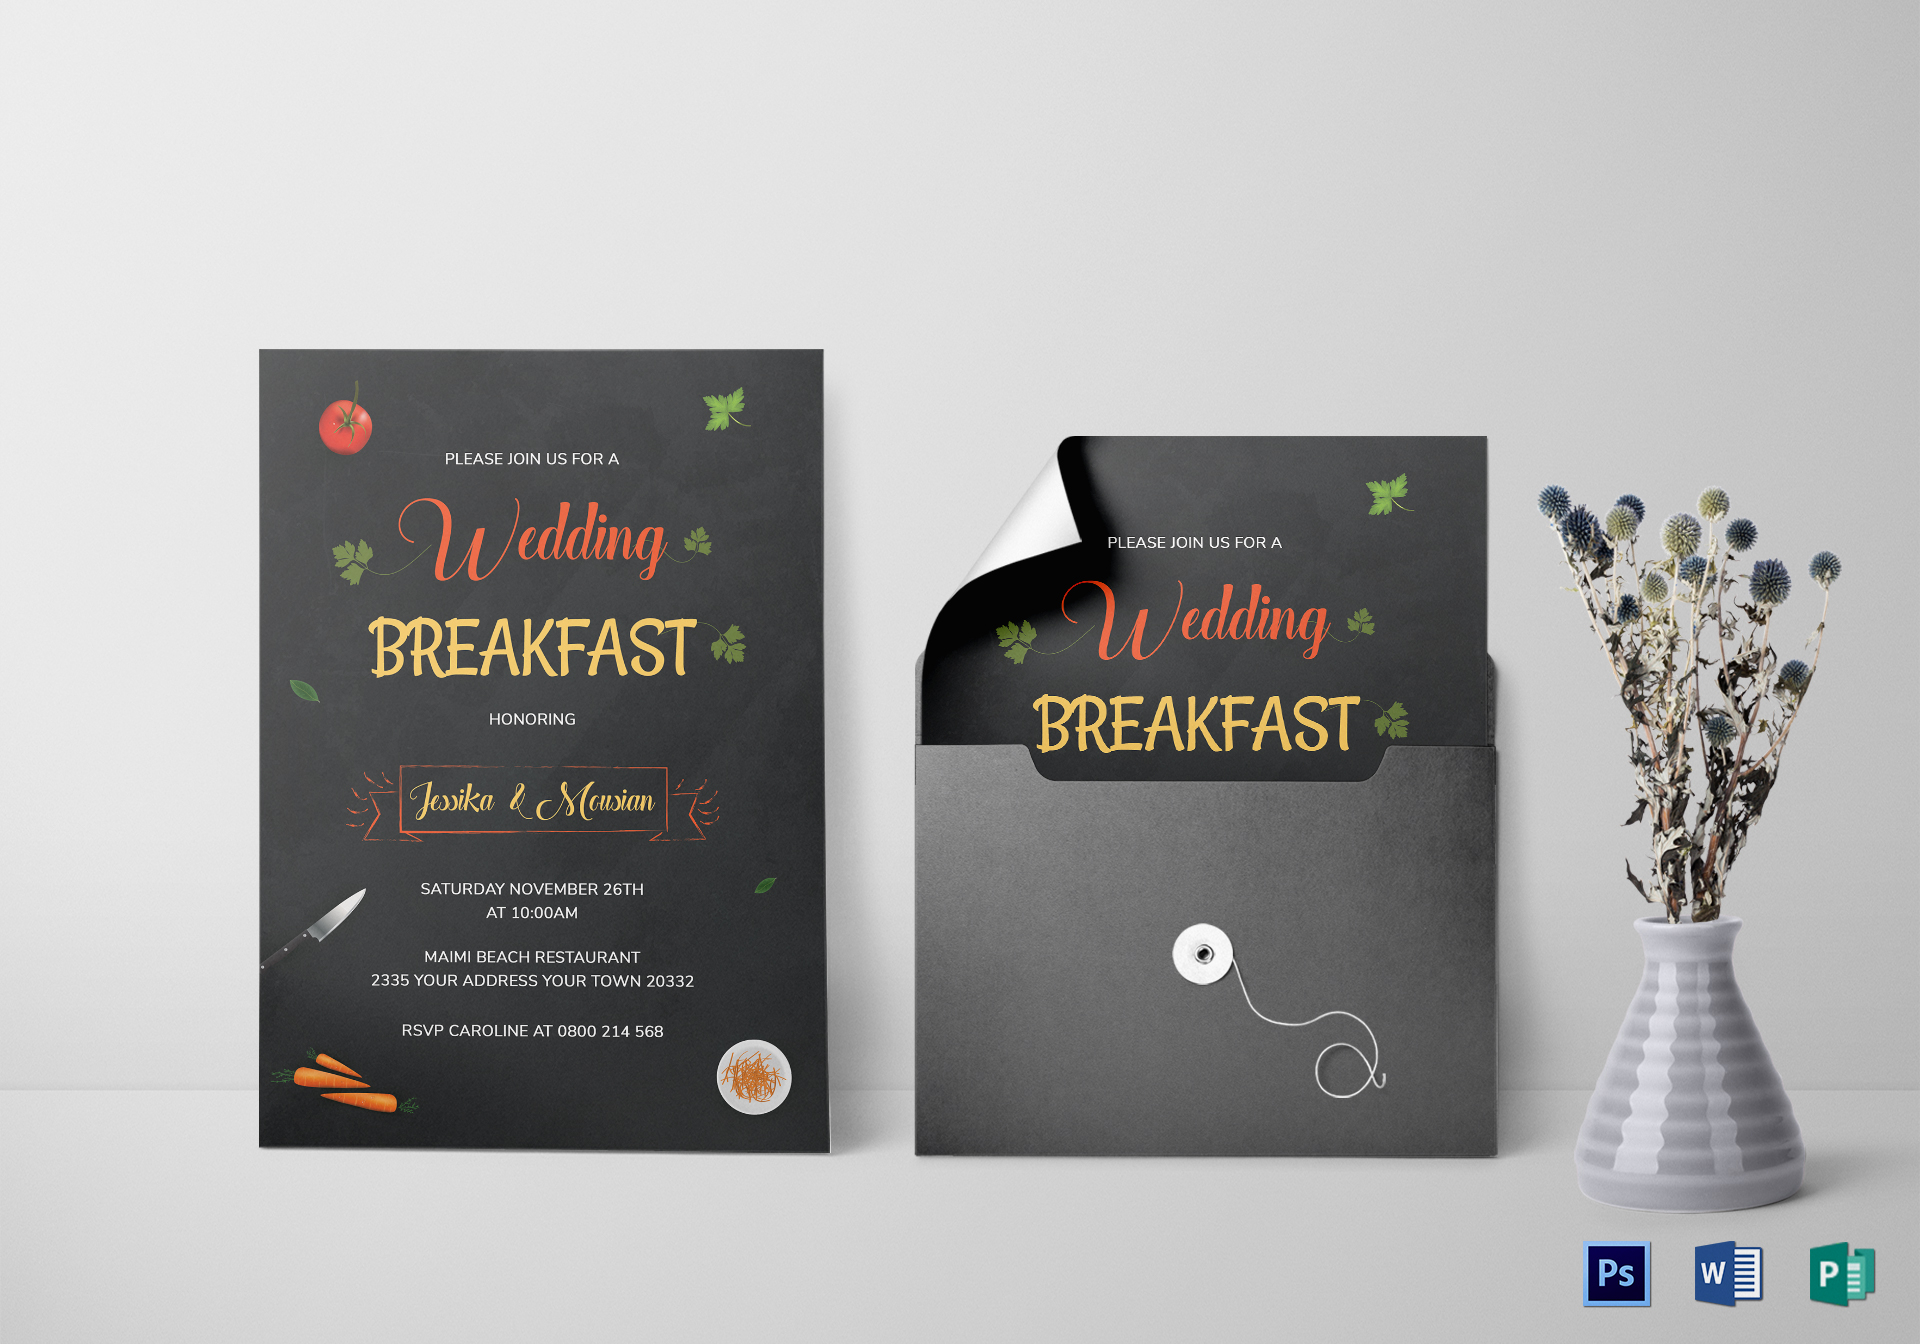 Wedding Breakfast Invitation Template